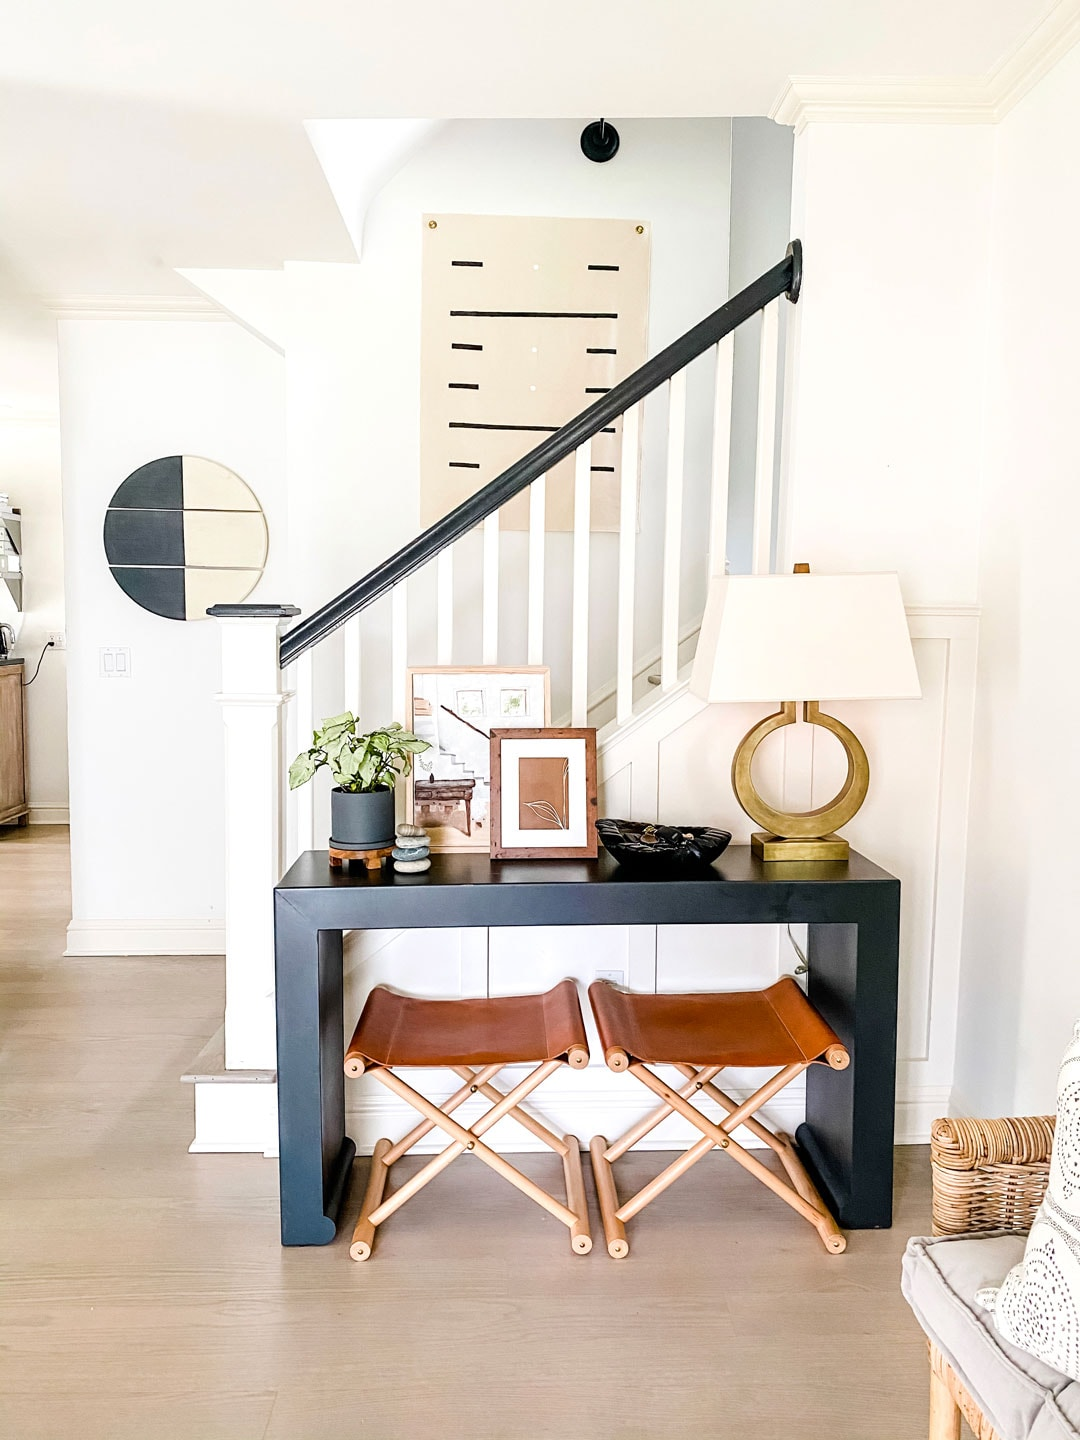 Lifestyle blogger Annie Diamond shares her ideas on console tables